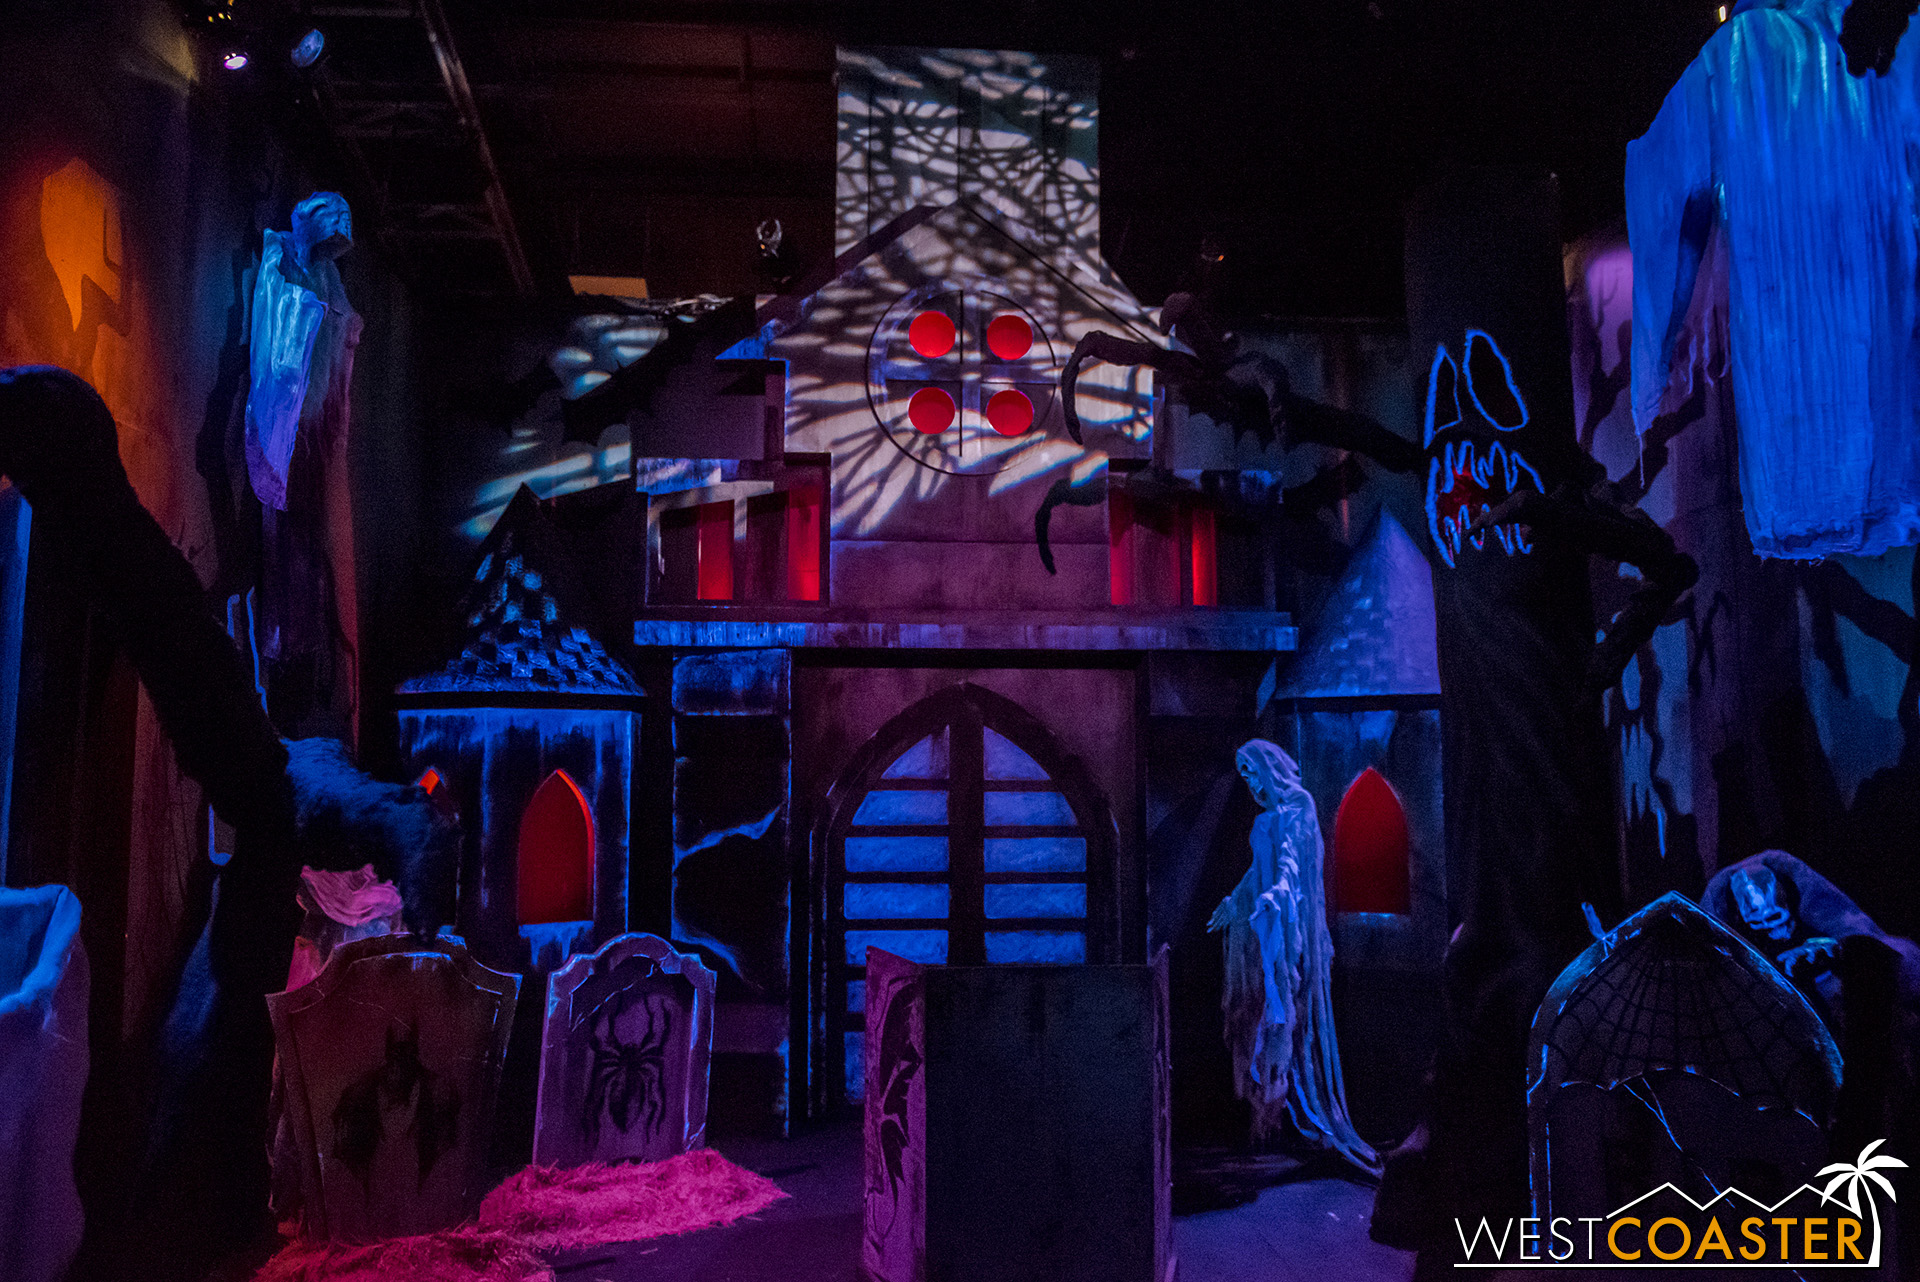 Dark Ride is a tribute to the corny, over-the-top, charming traveling amusement park rides of many people's youths.